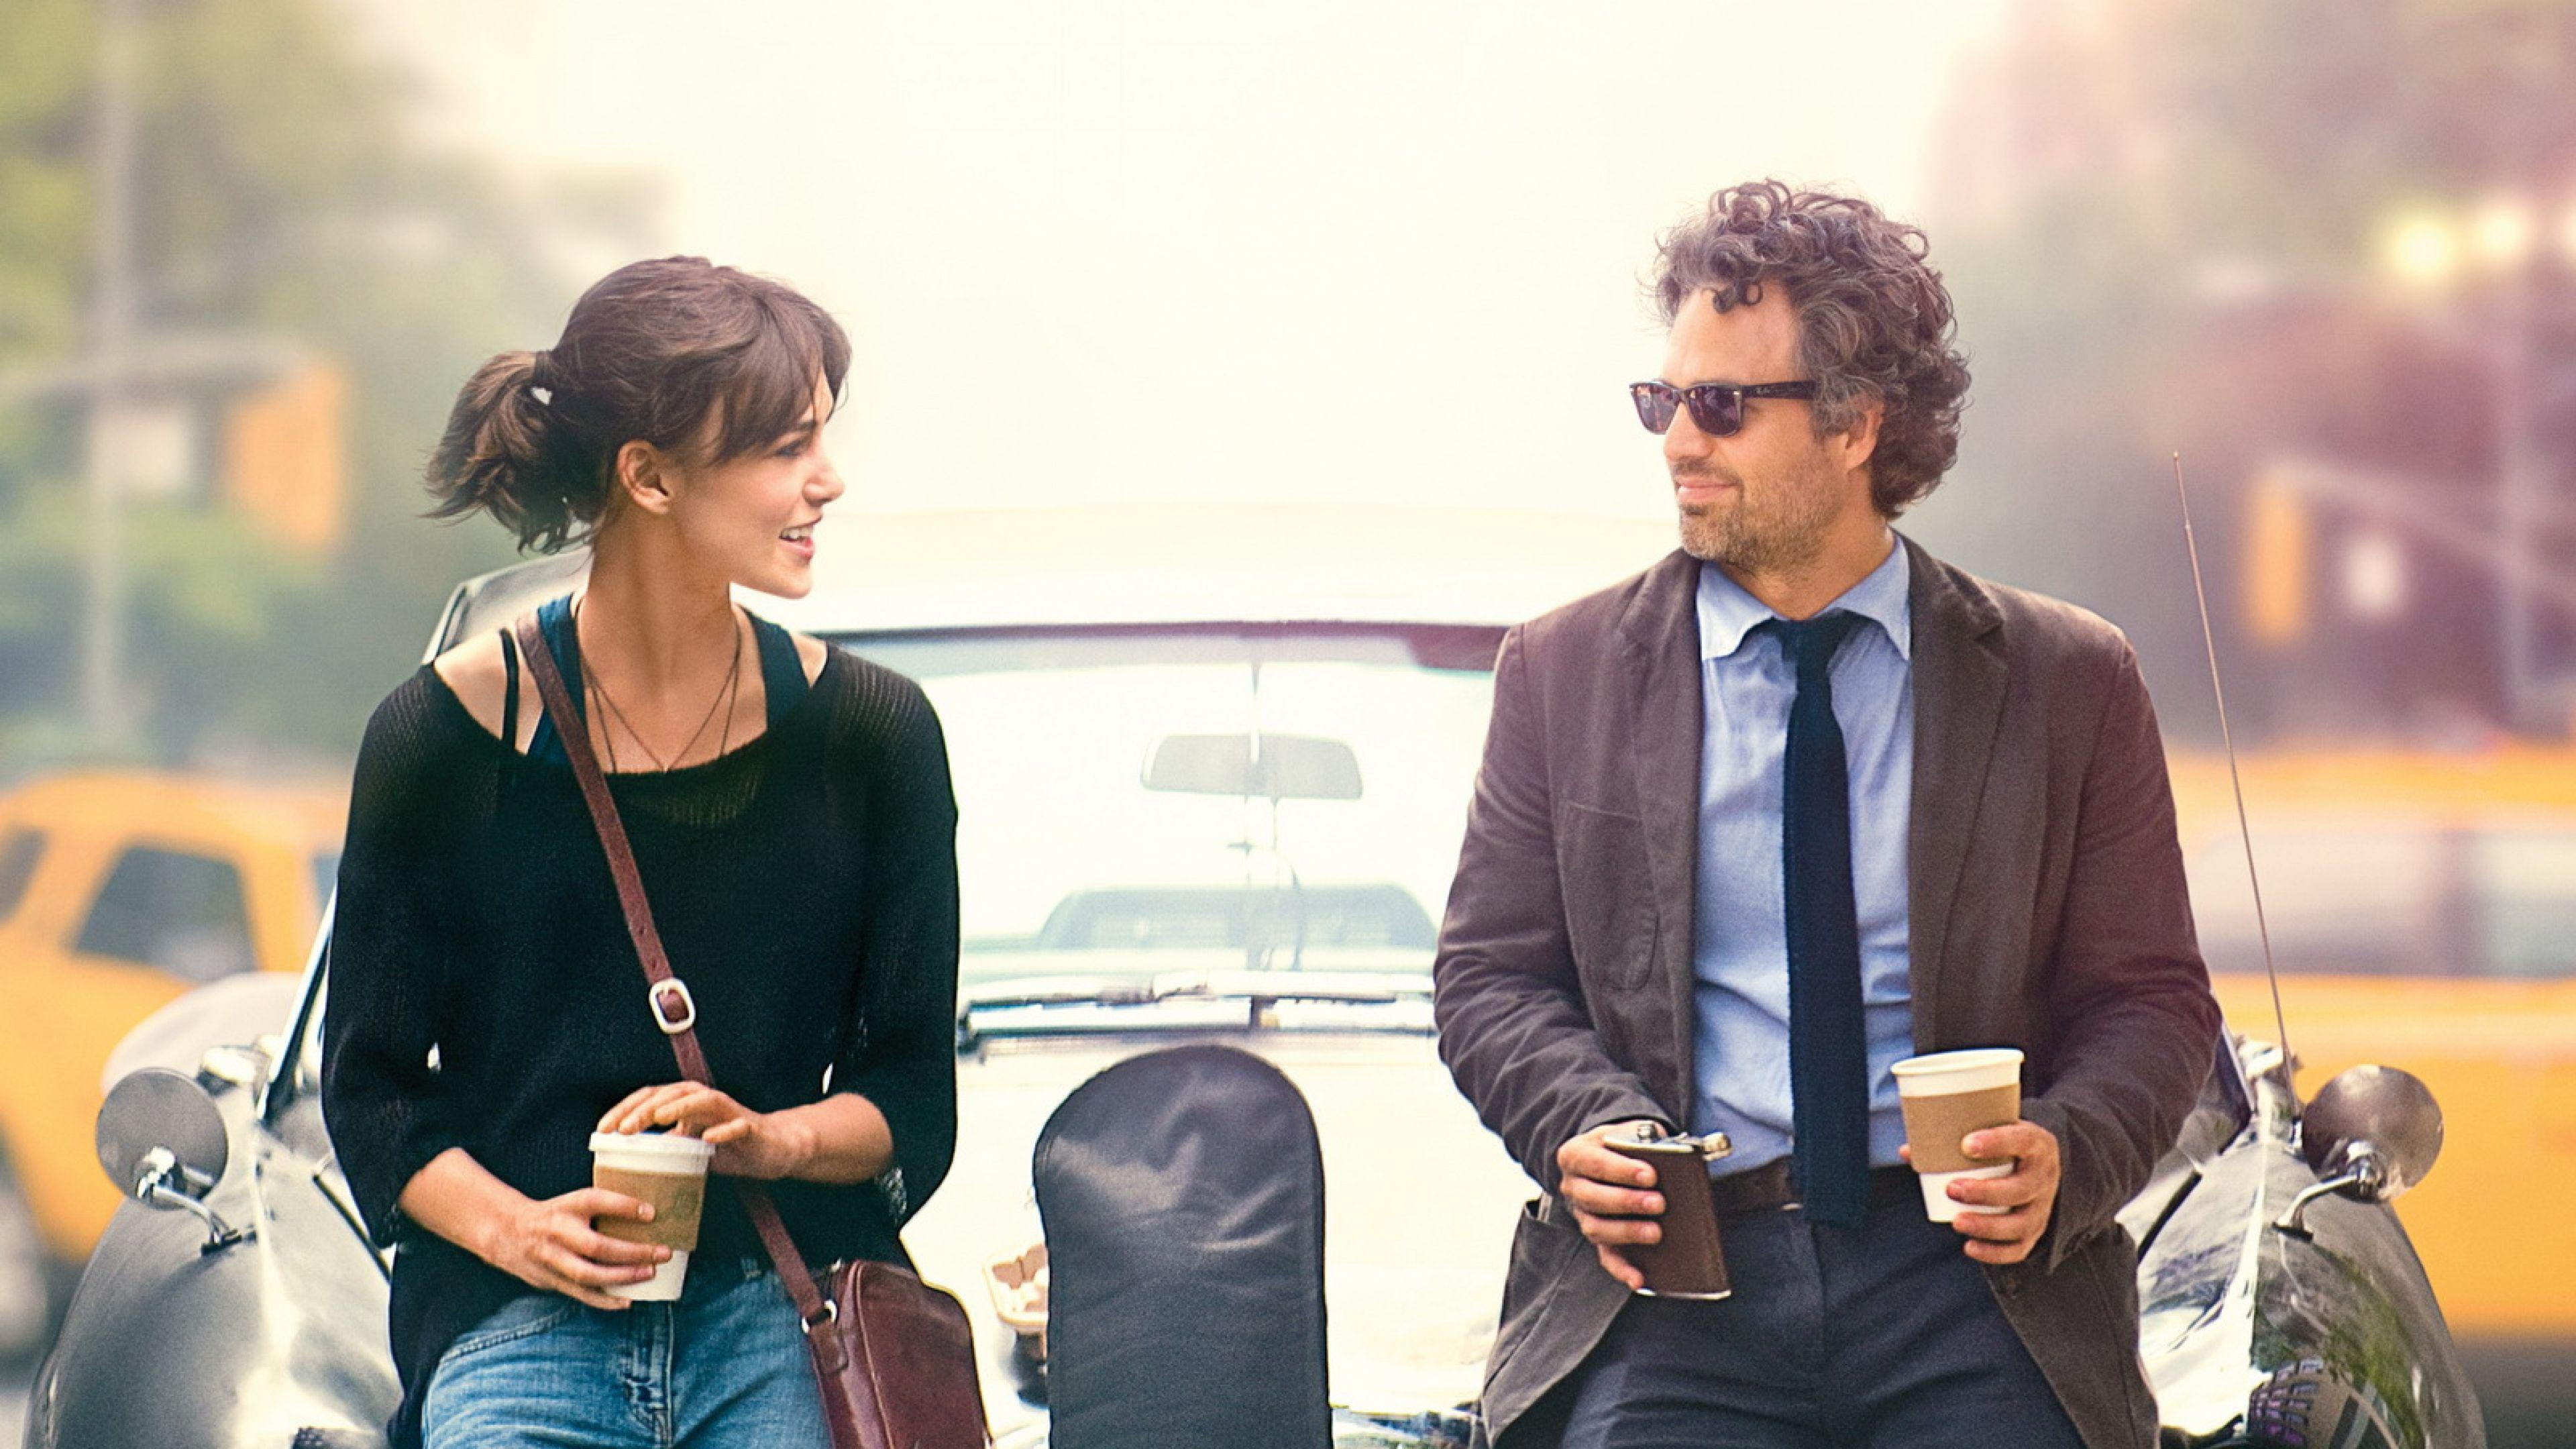 Download Wallpapers 3840x2160 Begin again, Haley staynfeld, Keira